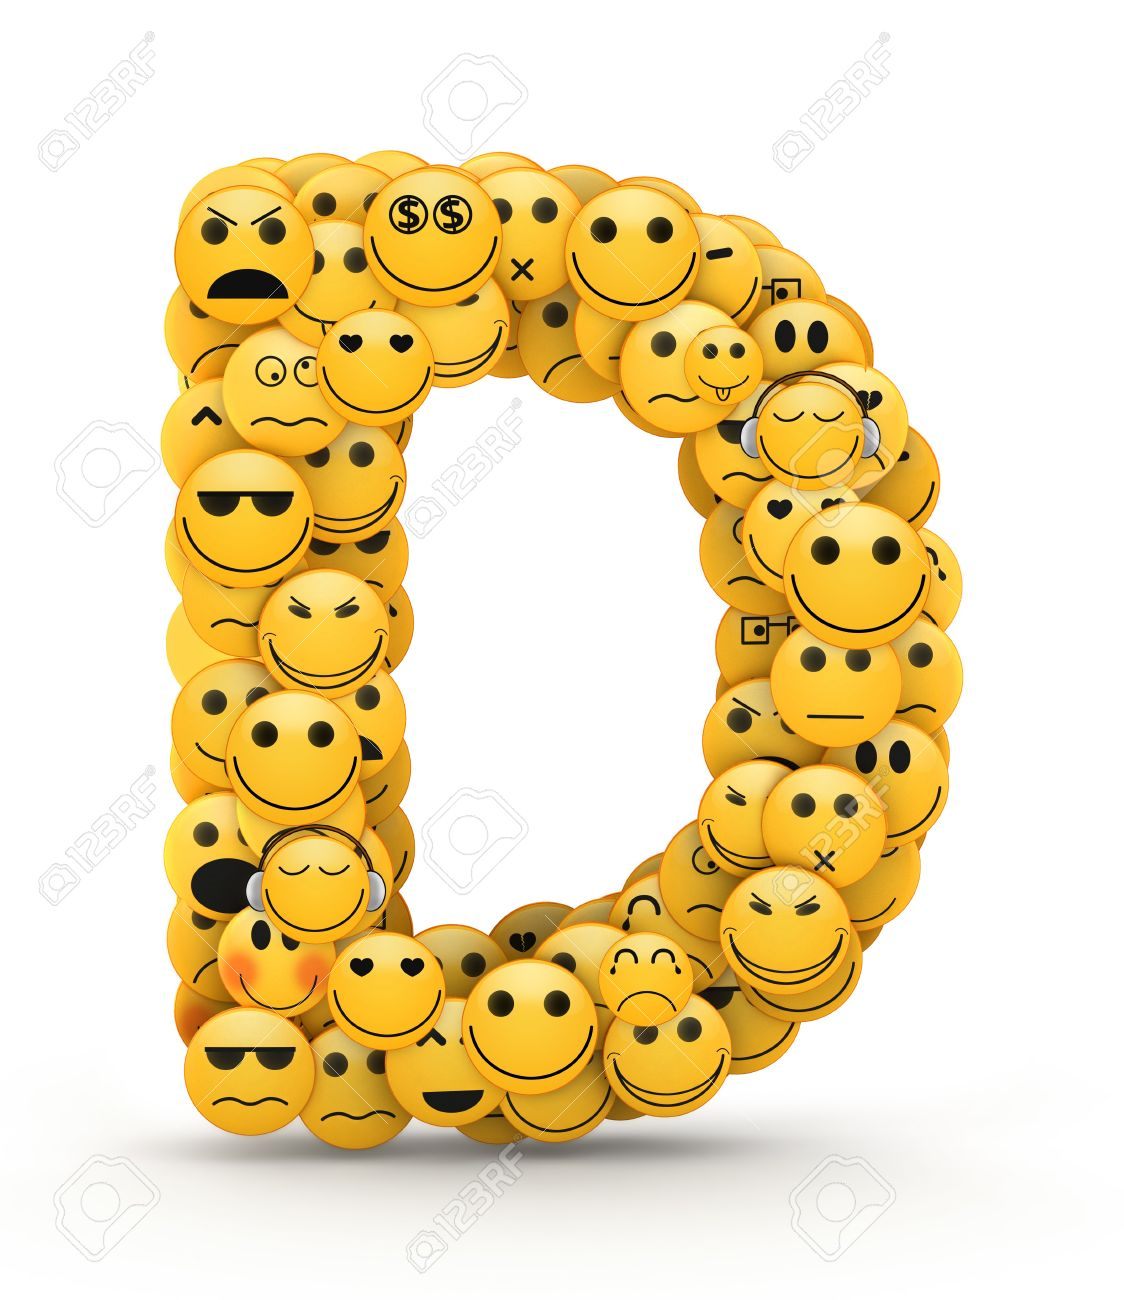 Letter D Compiled From Emoticons Smiles With Different Emotions